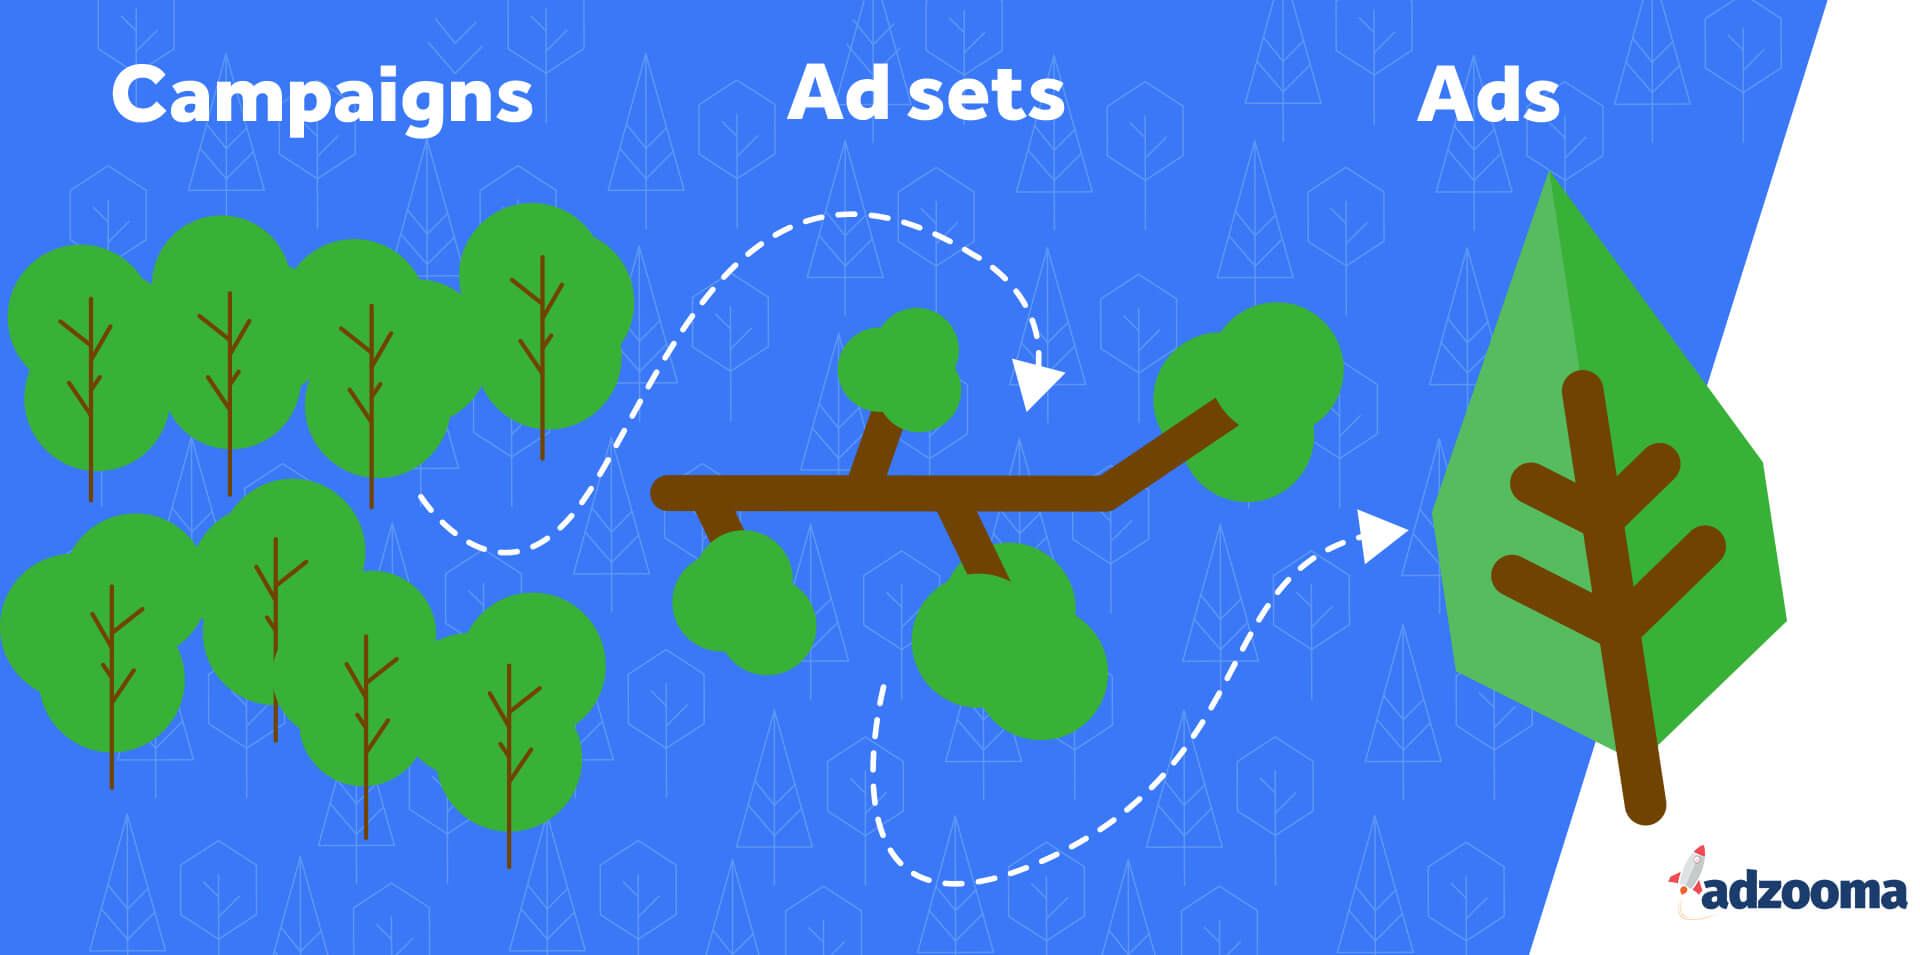 Facebook campaigns, ad sets, and ads as forests, trees, and leaves (infographic)